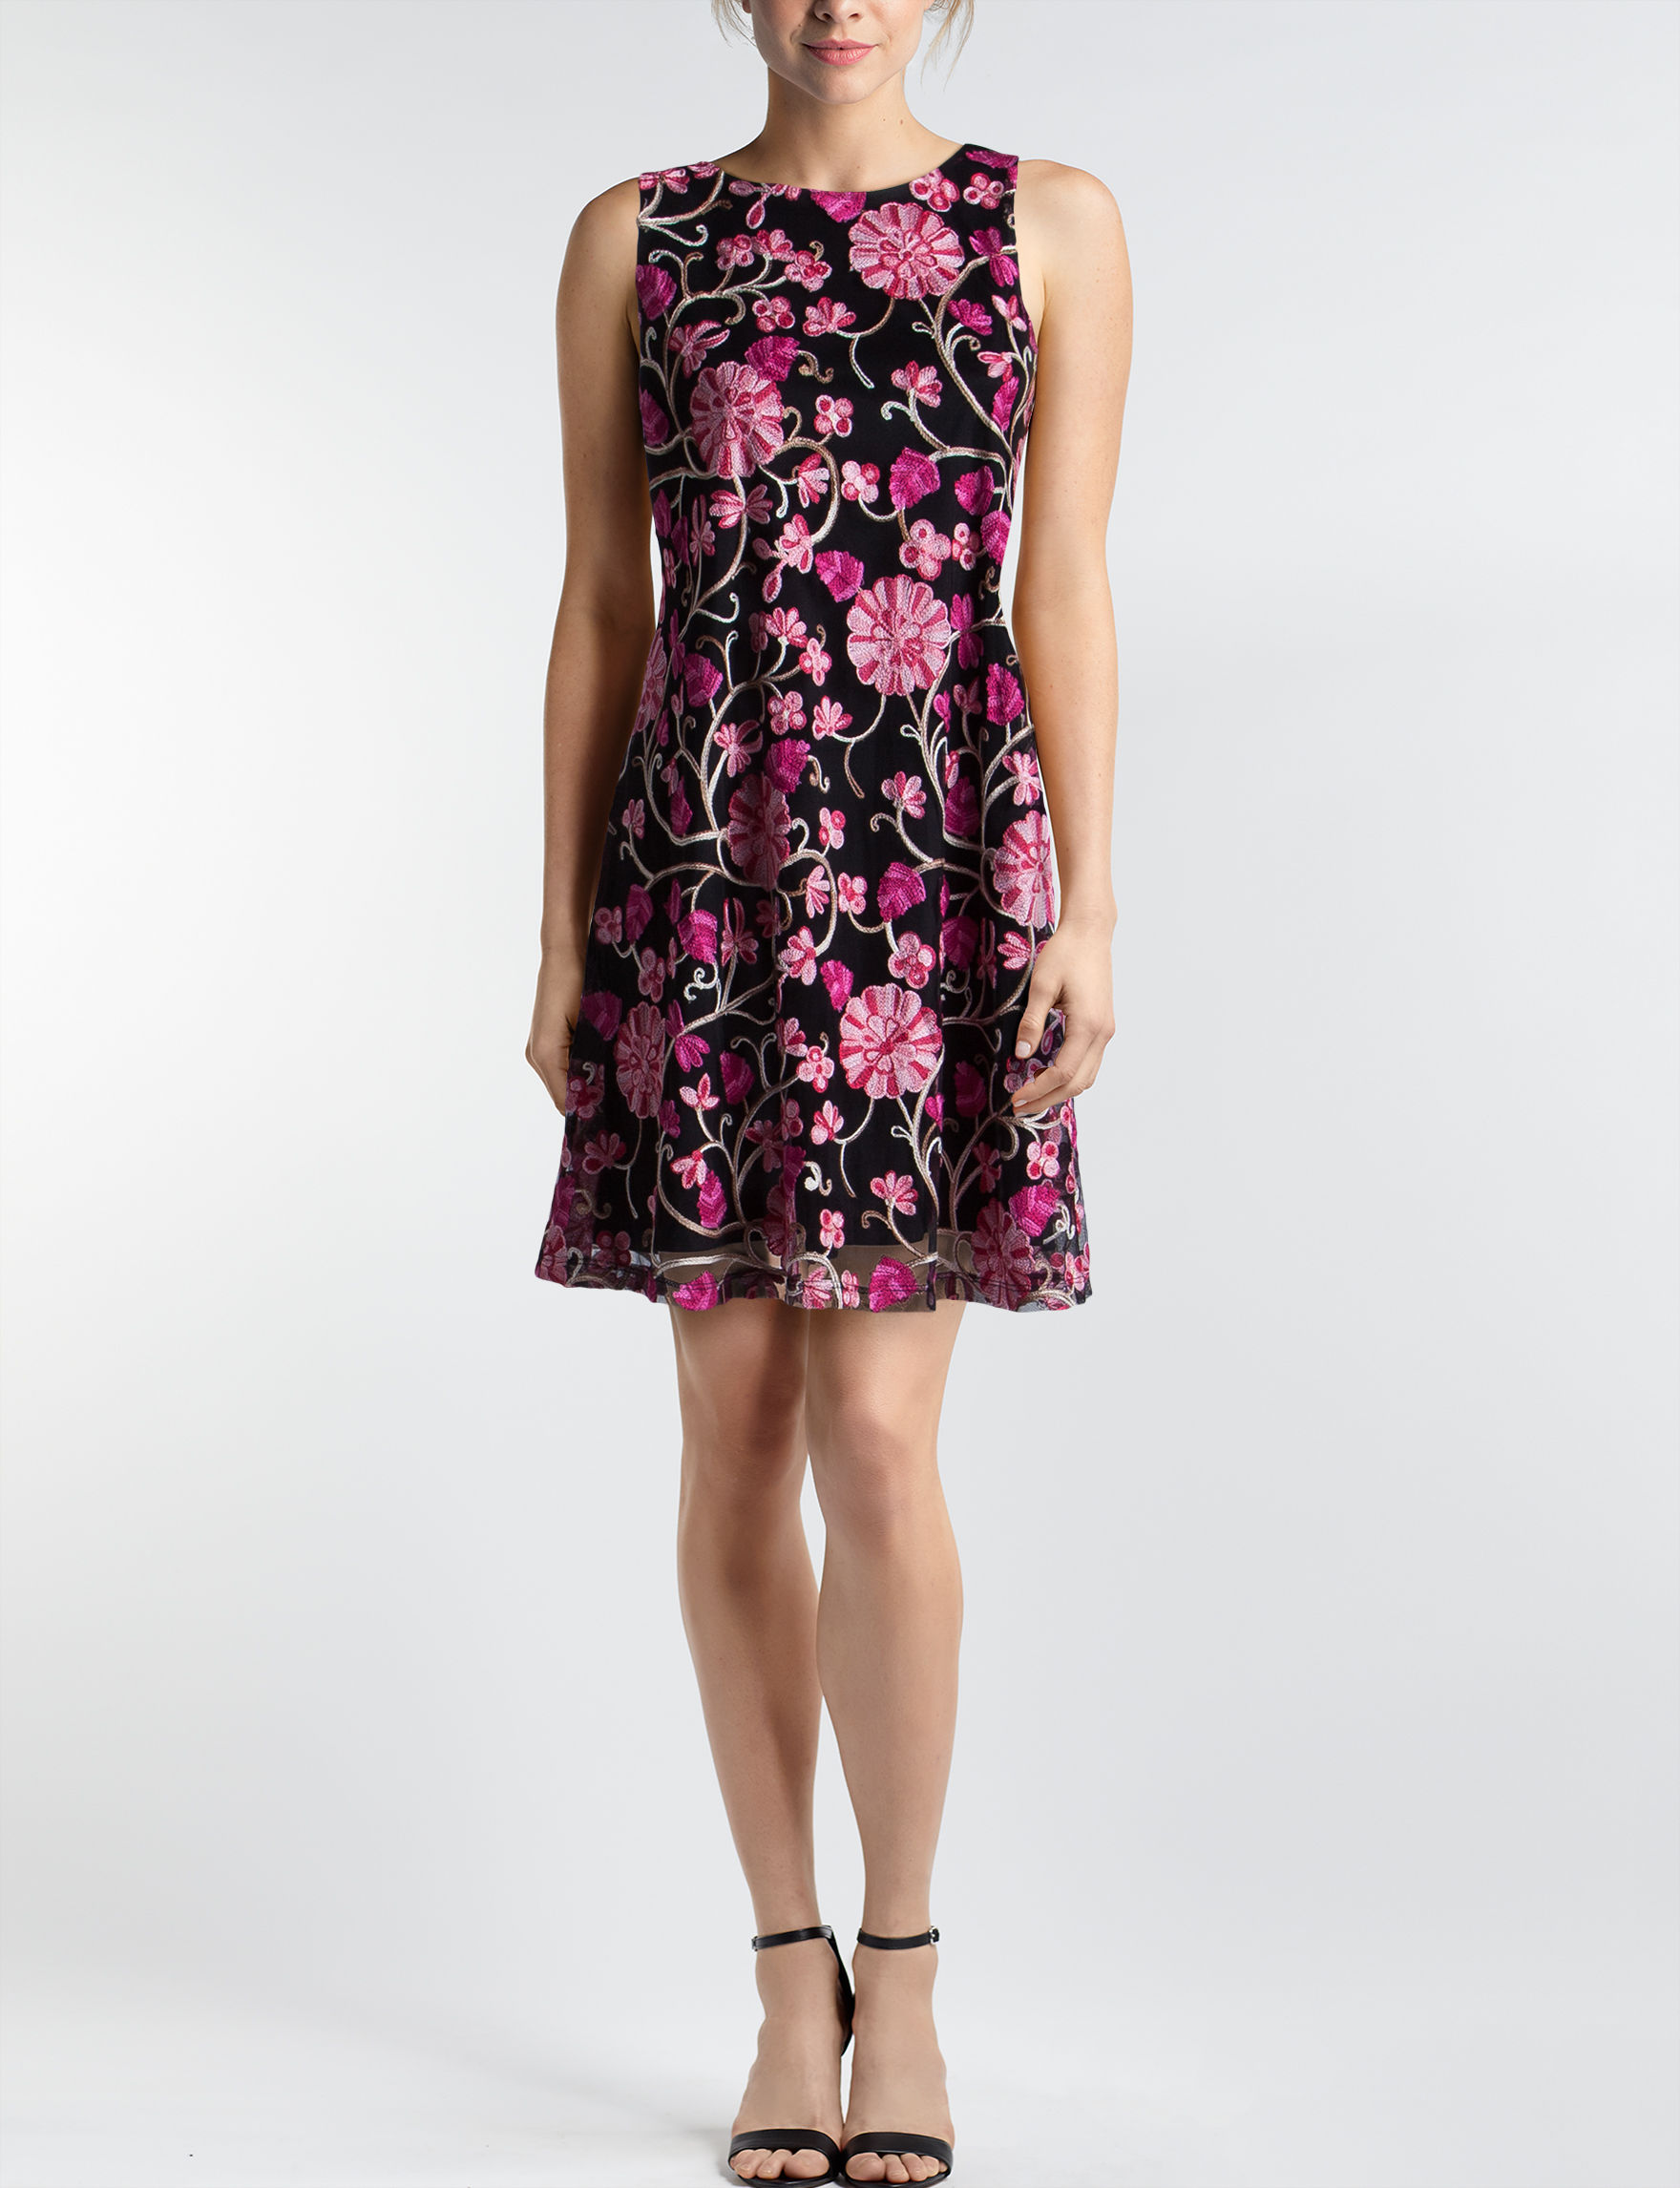 Ronni Nicole Black / Pink Everyday & Casual Shift Dresses